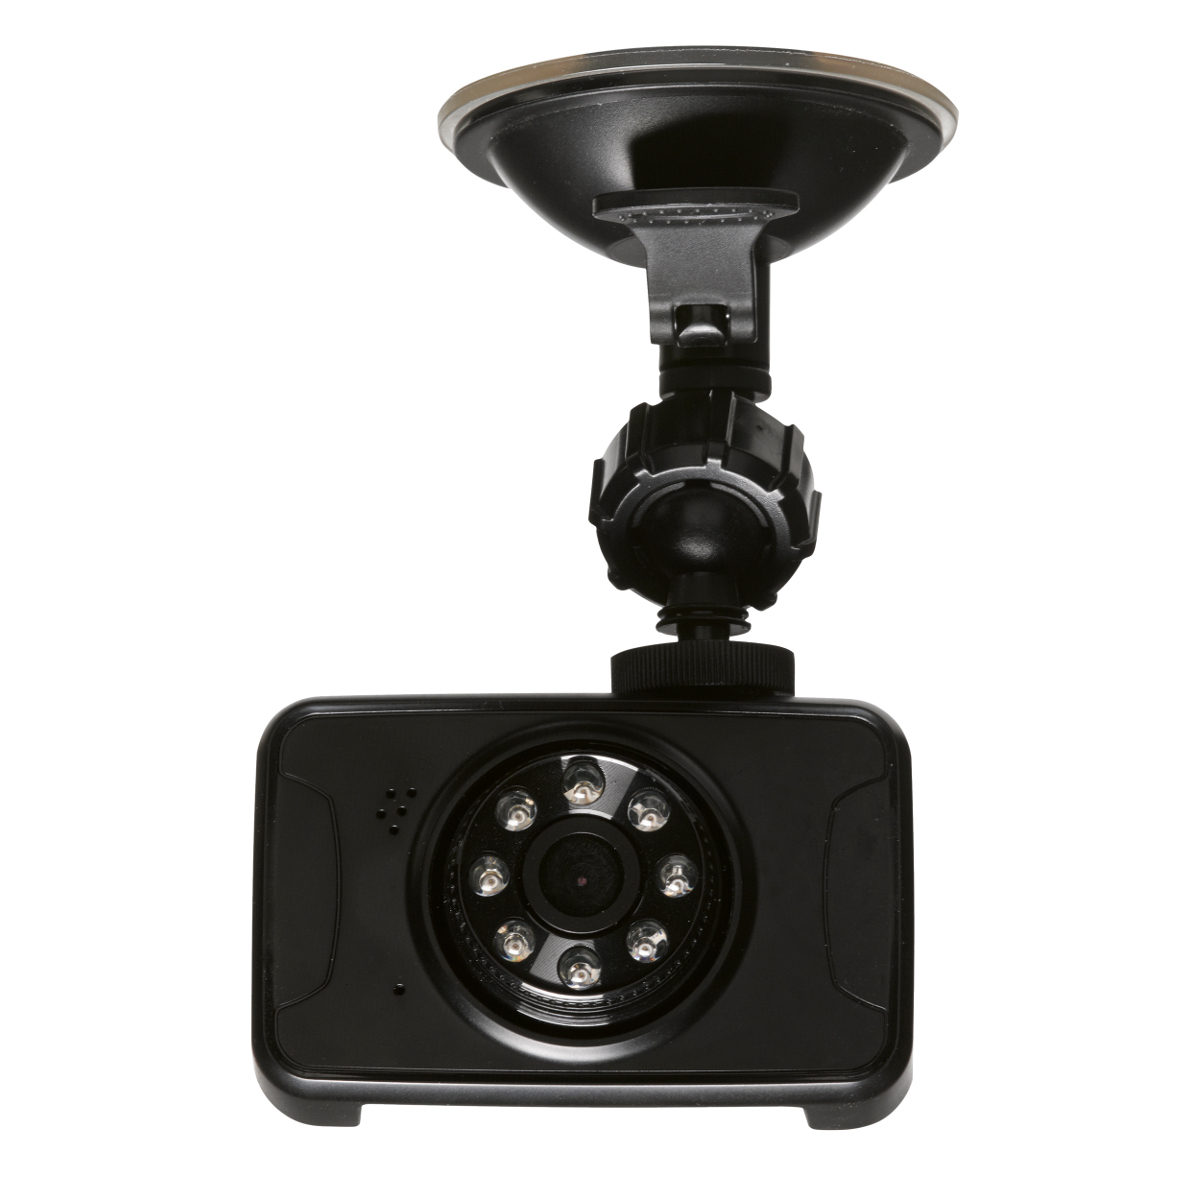 Image of CCT-5001MK2 - Black box car camera with 2.7 LCD screen - Denver Elect